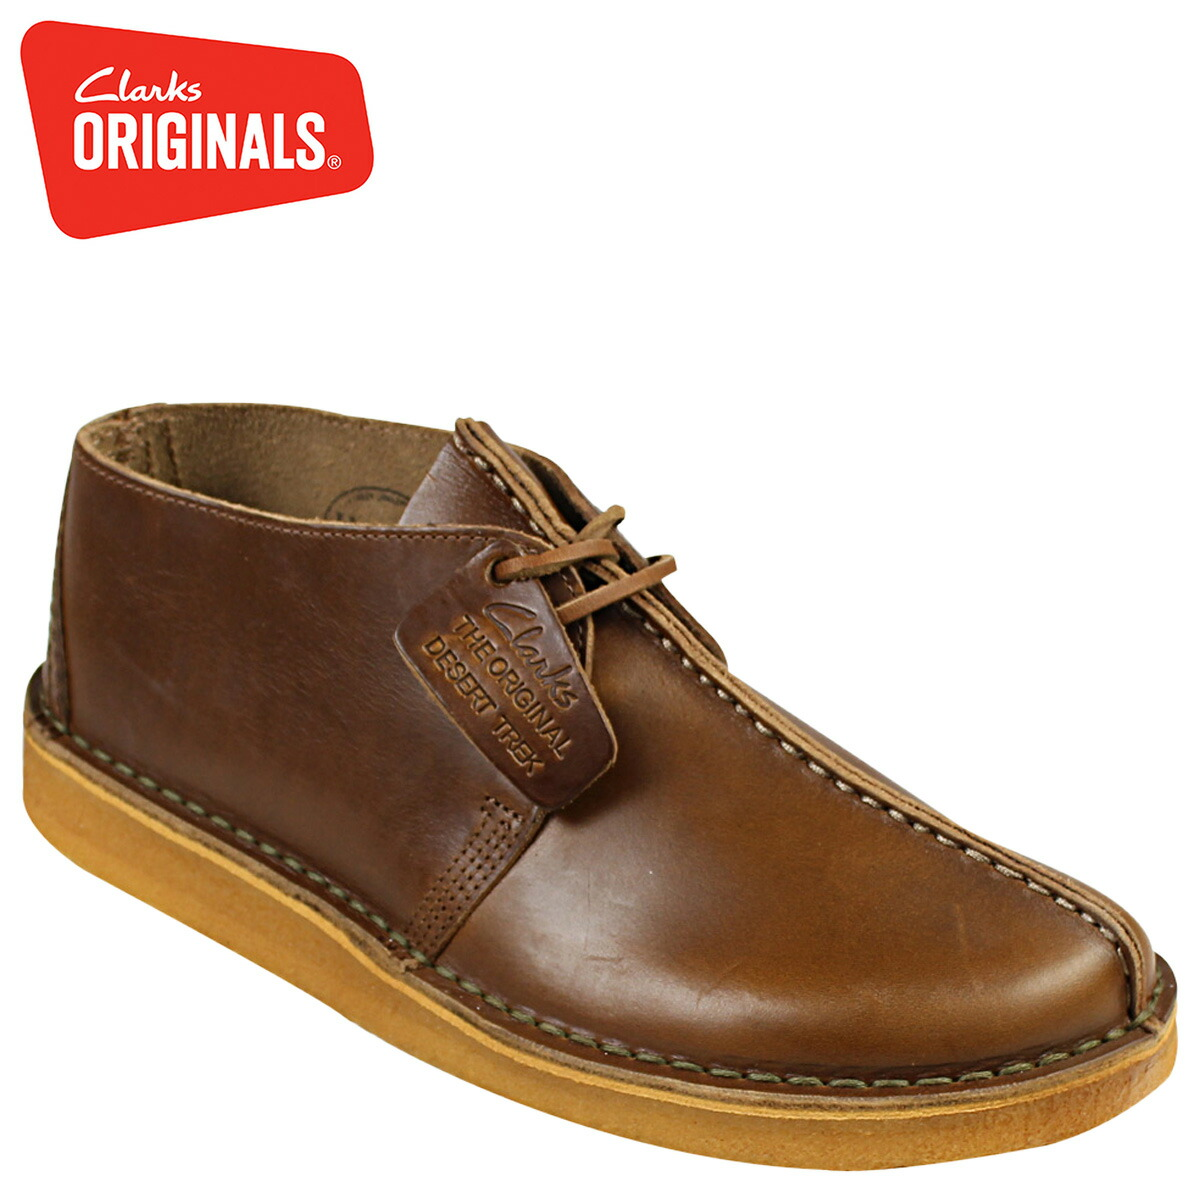 Japanese Brand Shoes Online